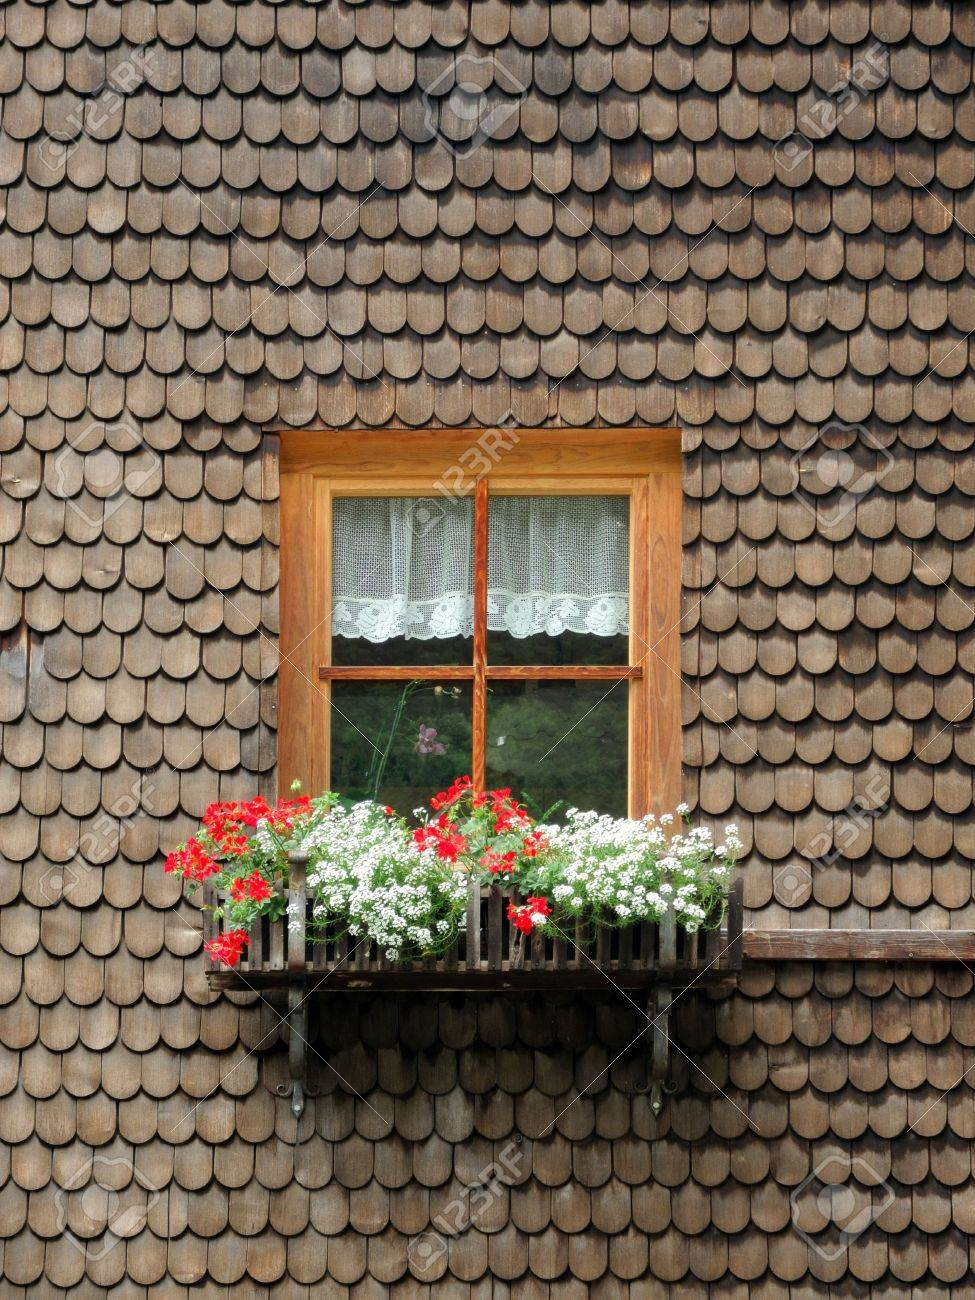 Vintage wooden window frame with curtain and flowerpot stock - Ancient Wooden Window With Flowers Surrounded By Timber Shingles Stock Photo 14774344